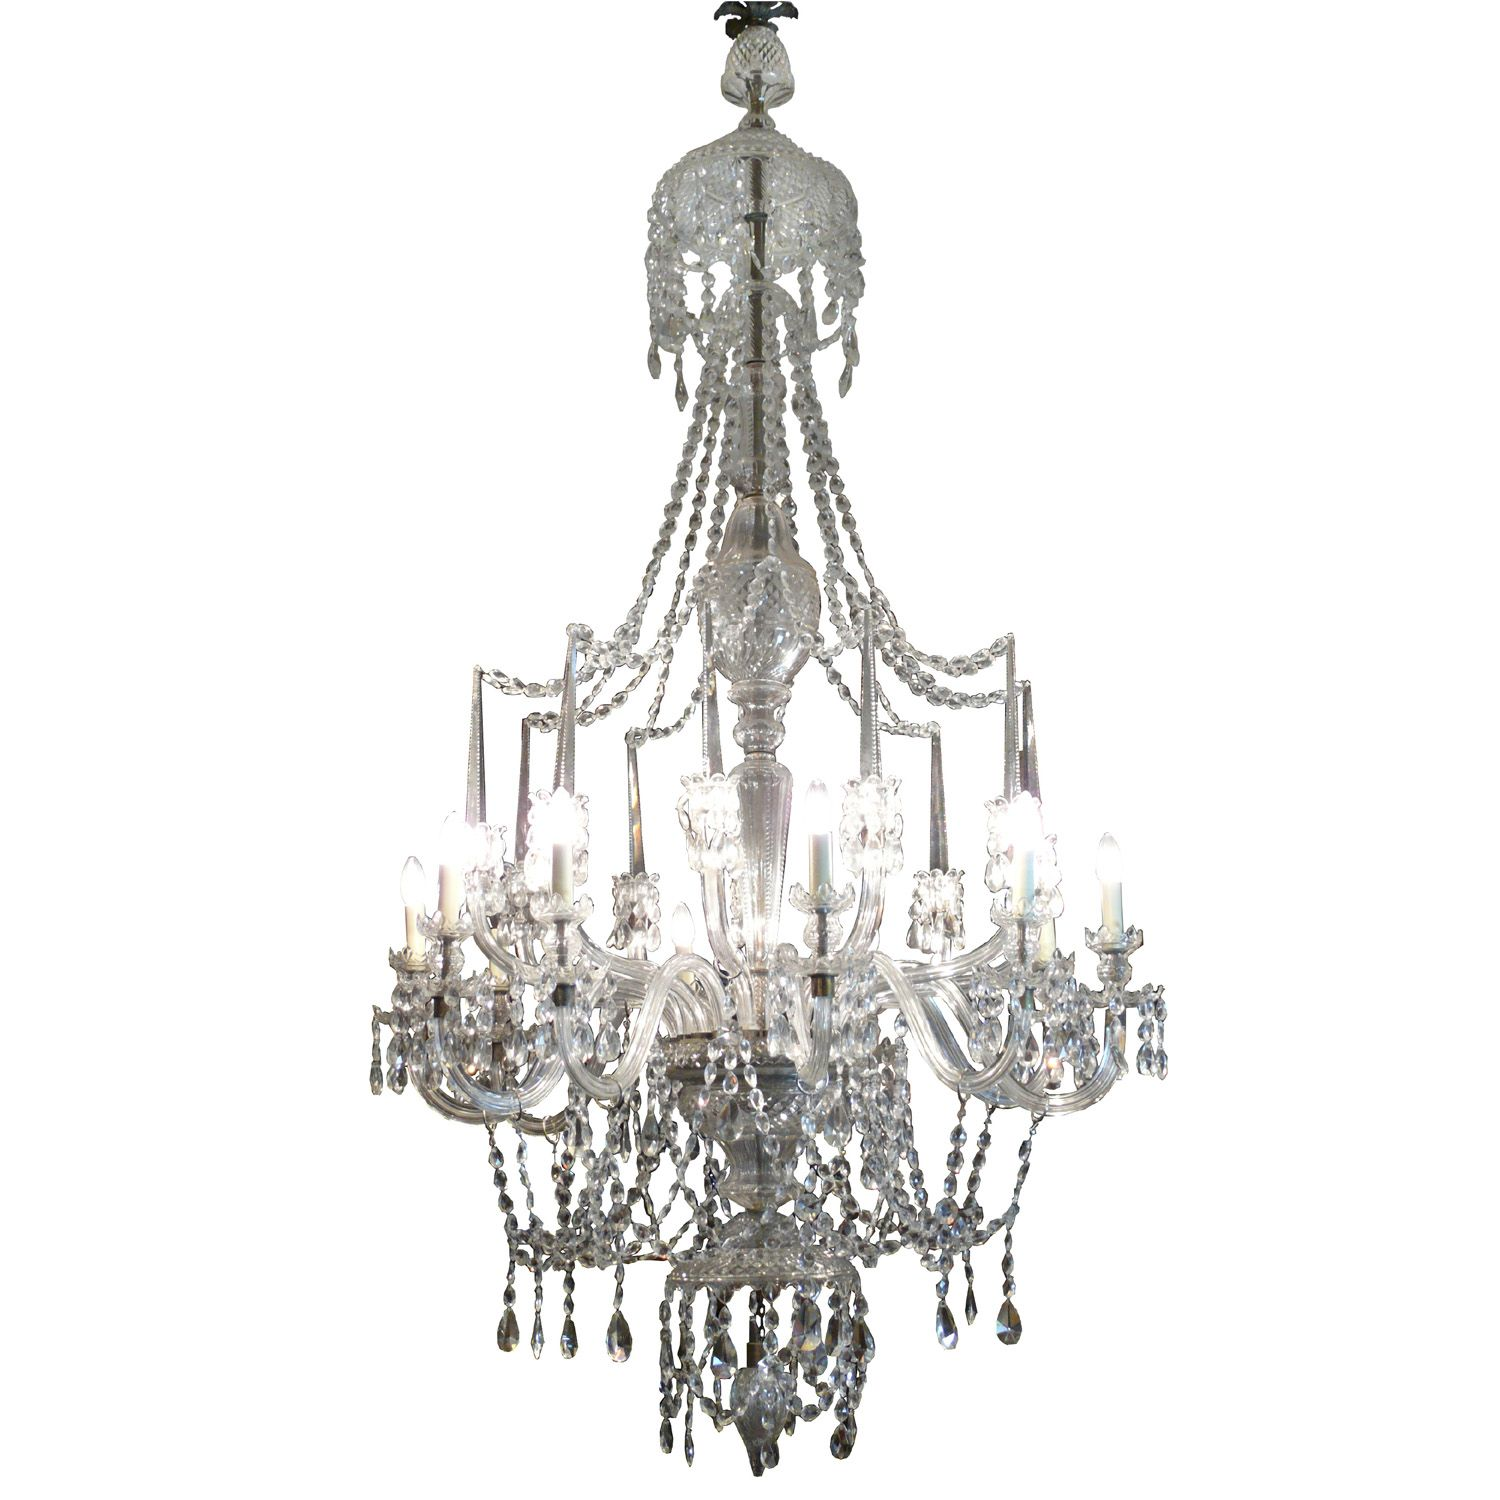 crystal chandeliers lights pin chrome with max brand contemporary unitary finish chandelier large